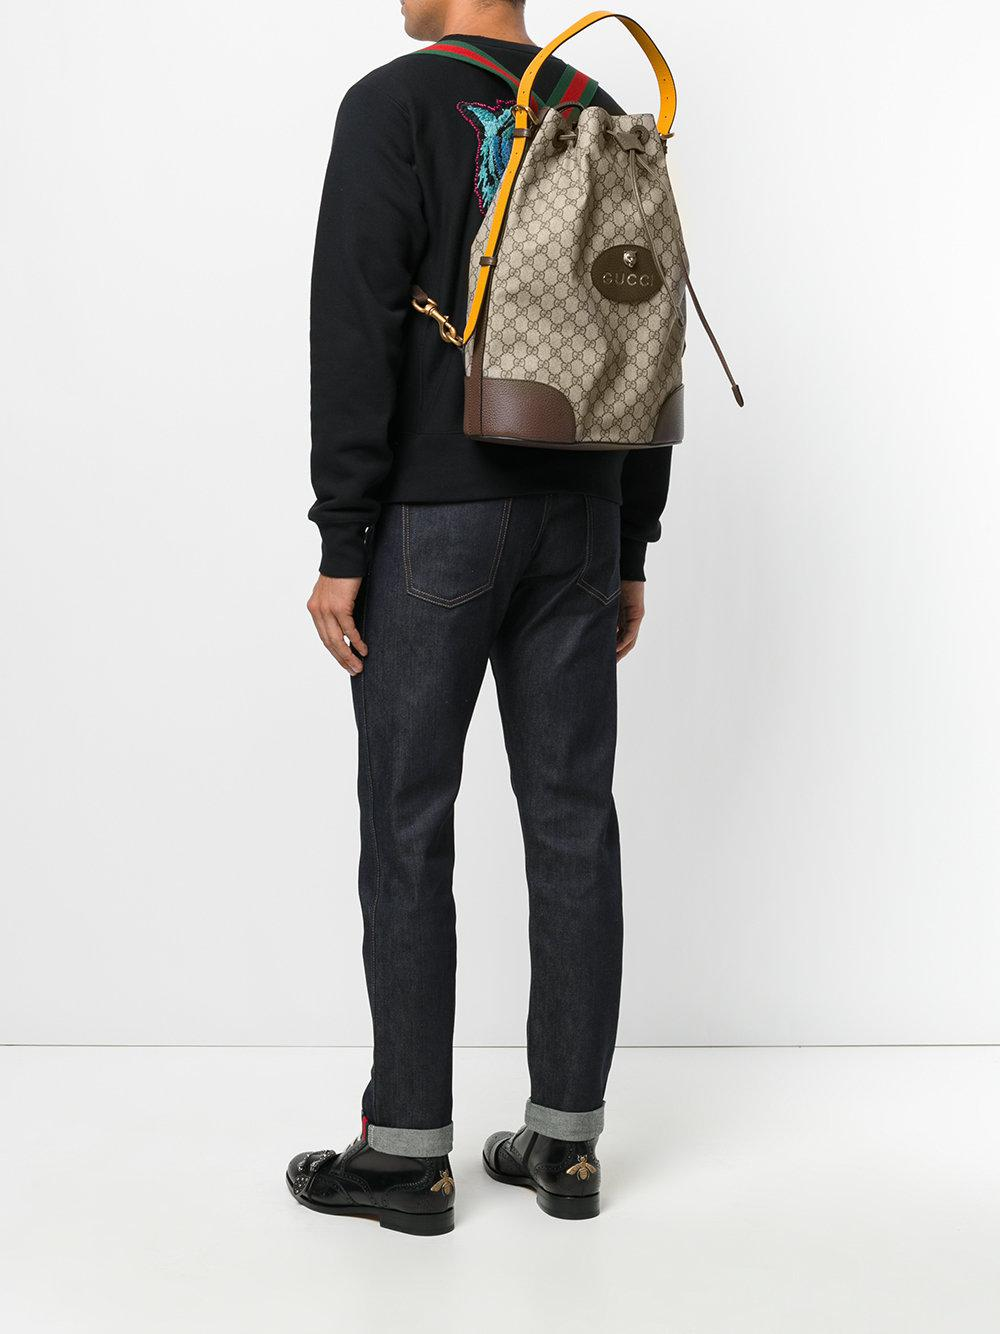 a666a89db22a51 Gucci Gg Supreme Drawstring Backpack in Brown for Men - Lyst